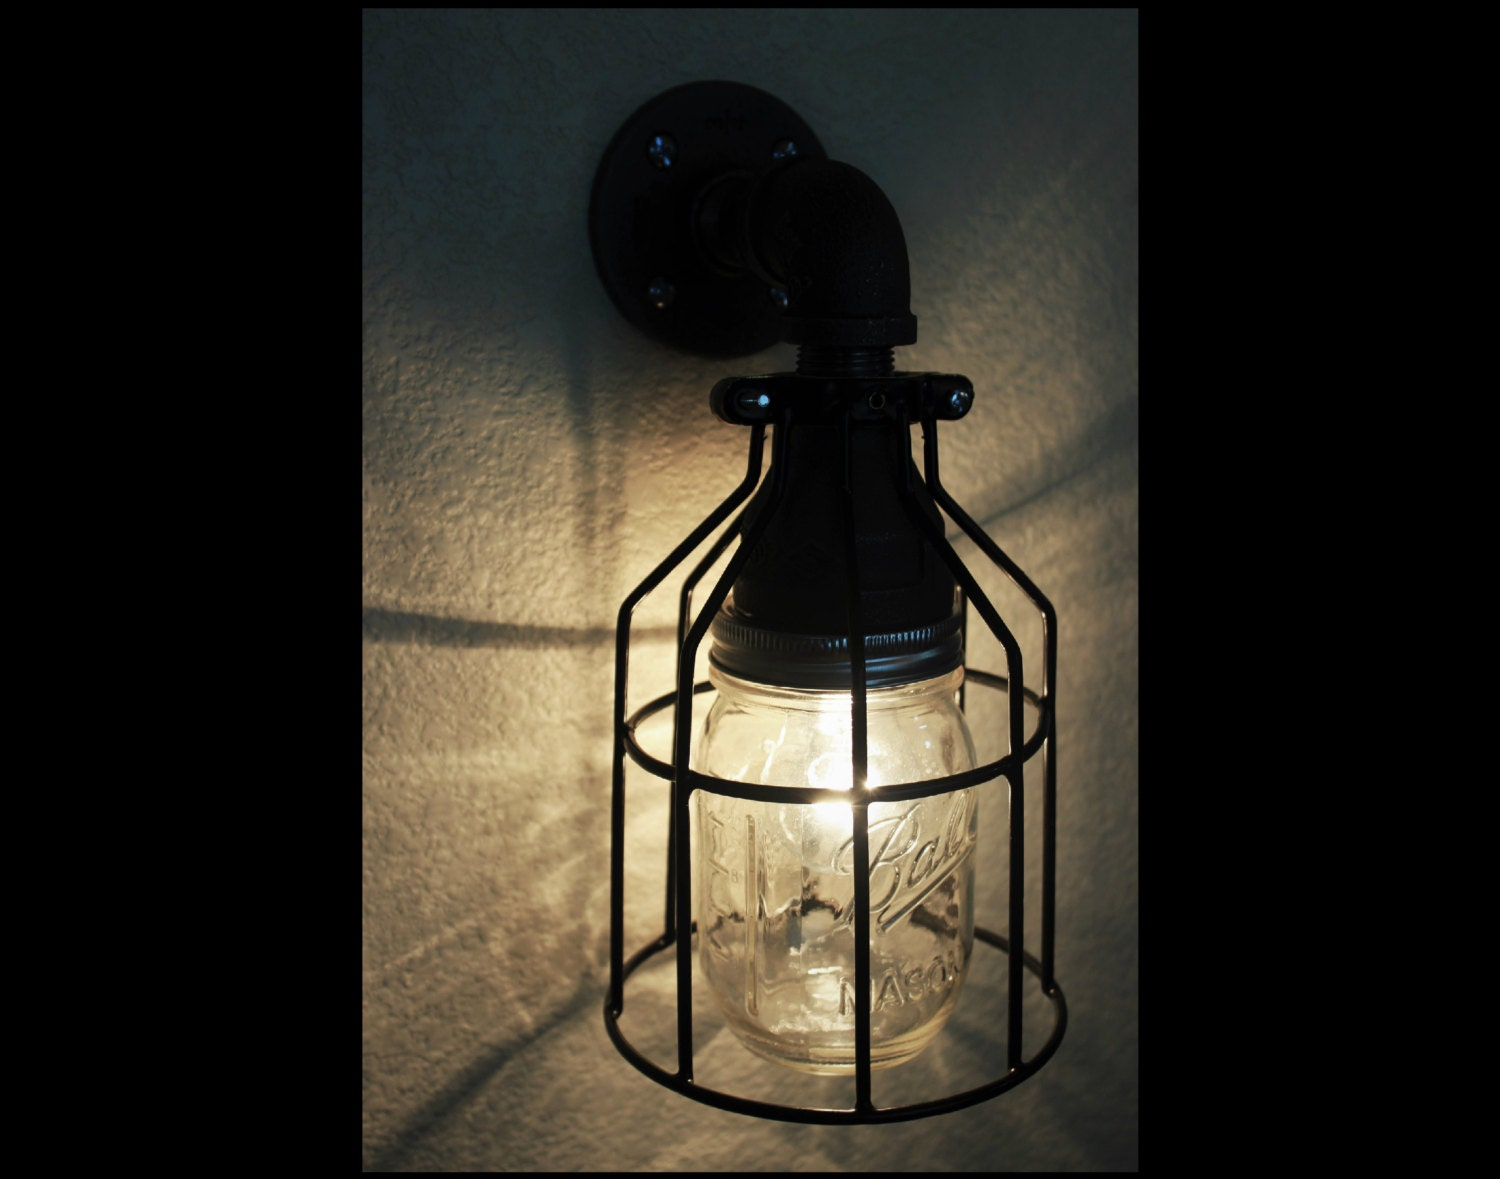 Industrial Pipe Wall Sconce Mason Jar w/ Cage Light Black